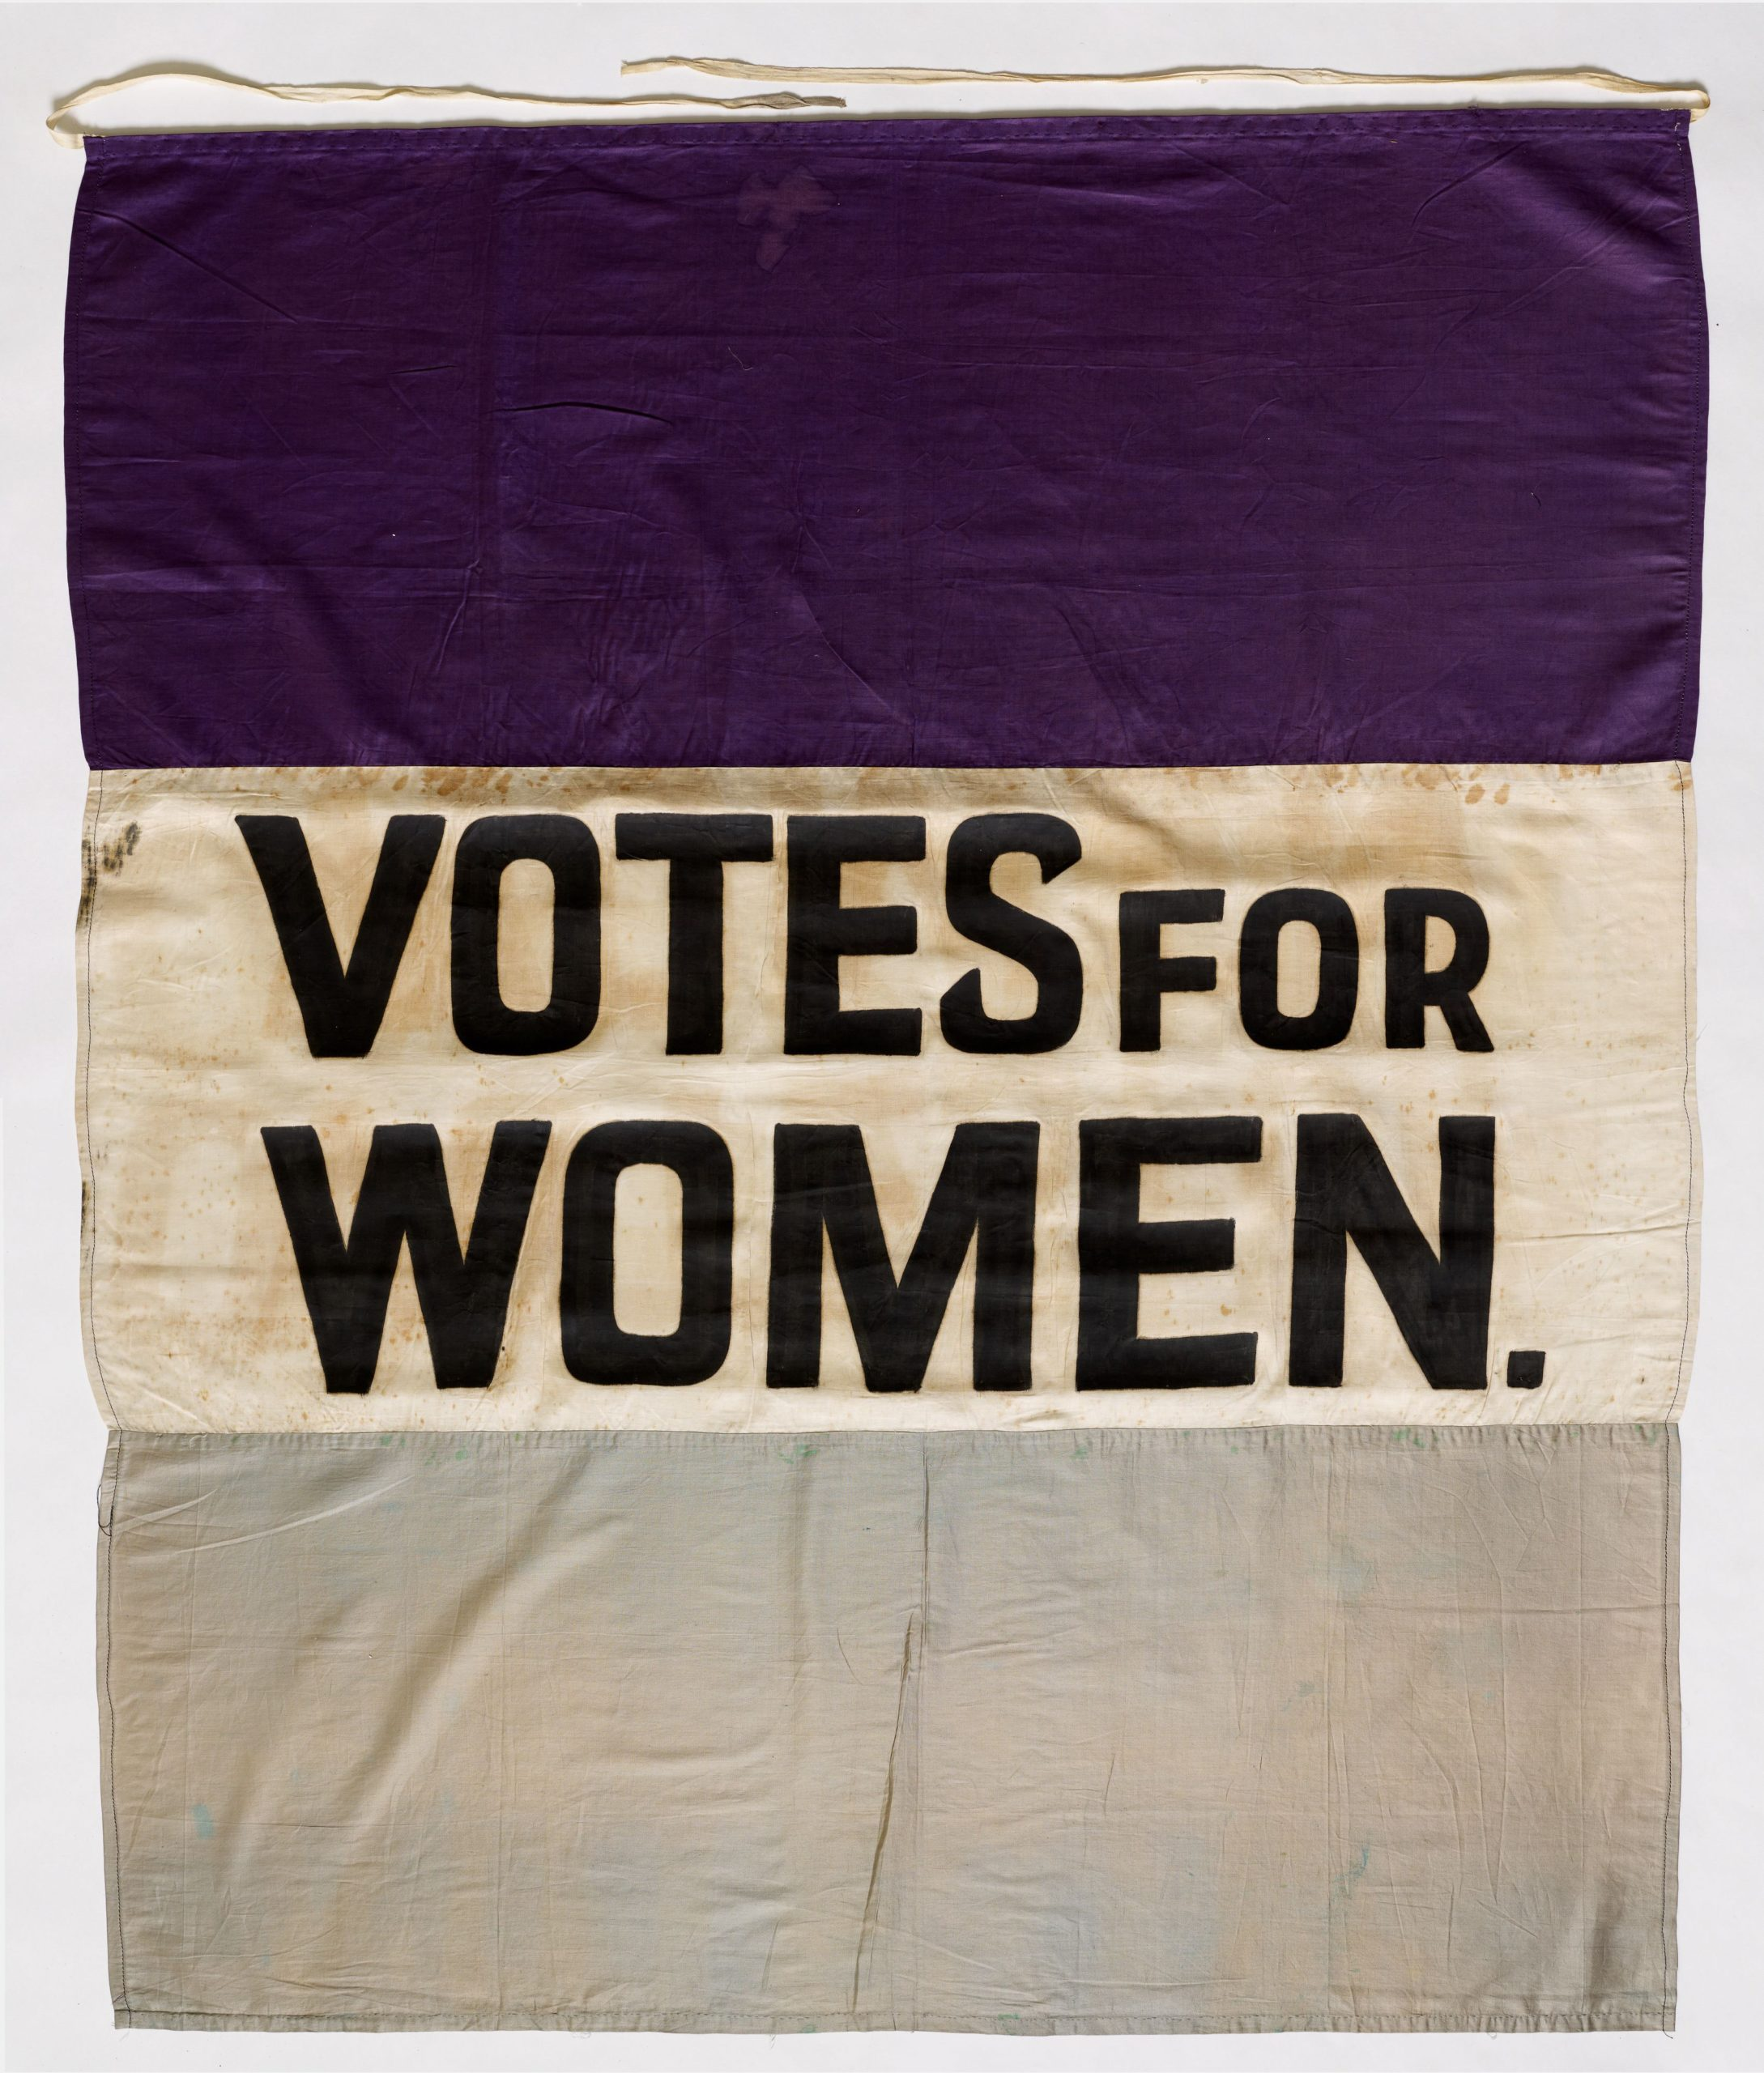 Votes for Women image from Birmingham Museum Trust